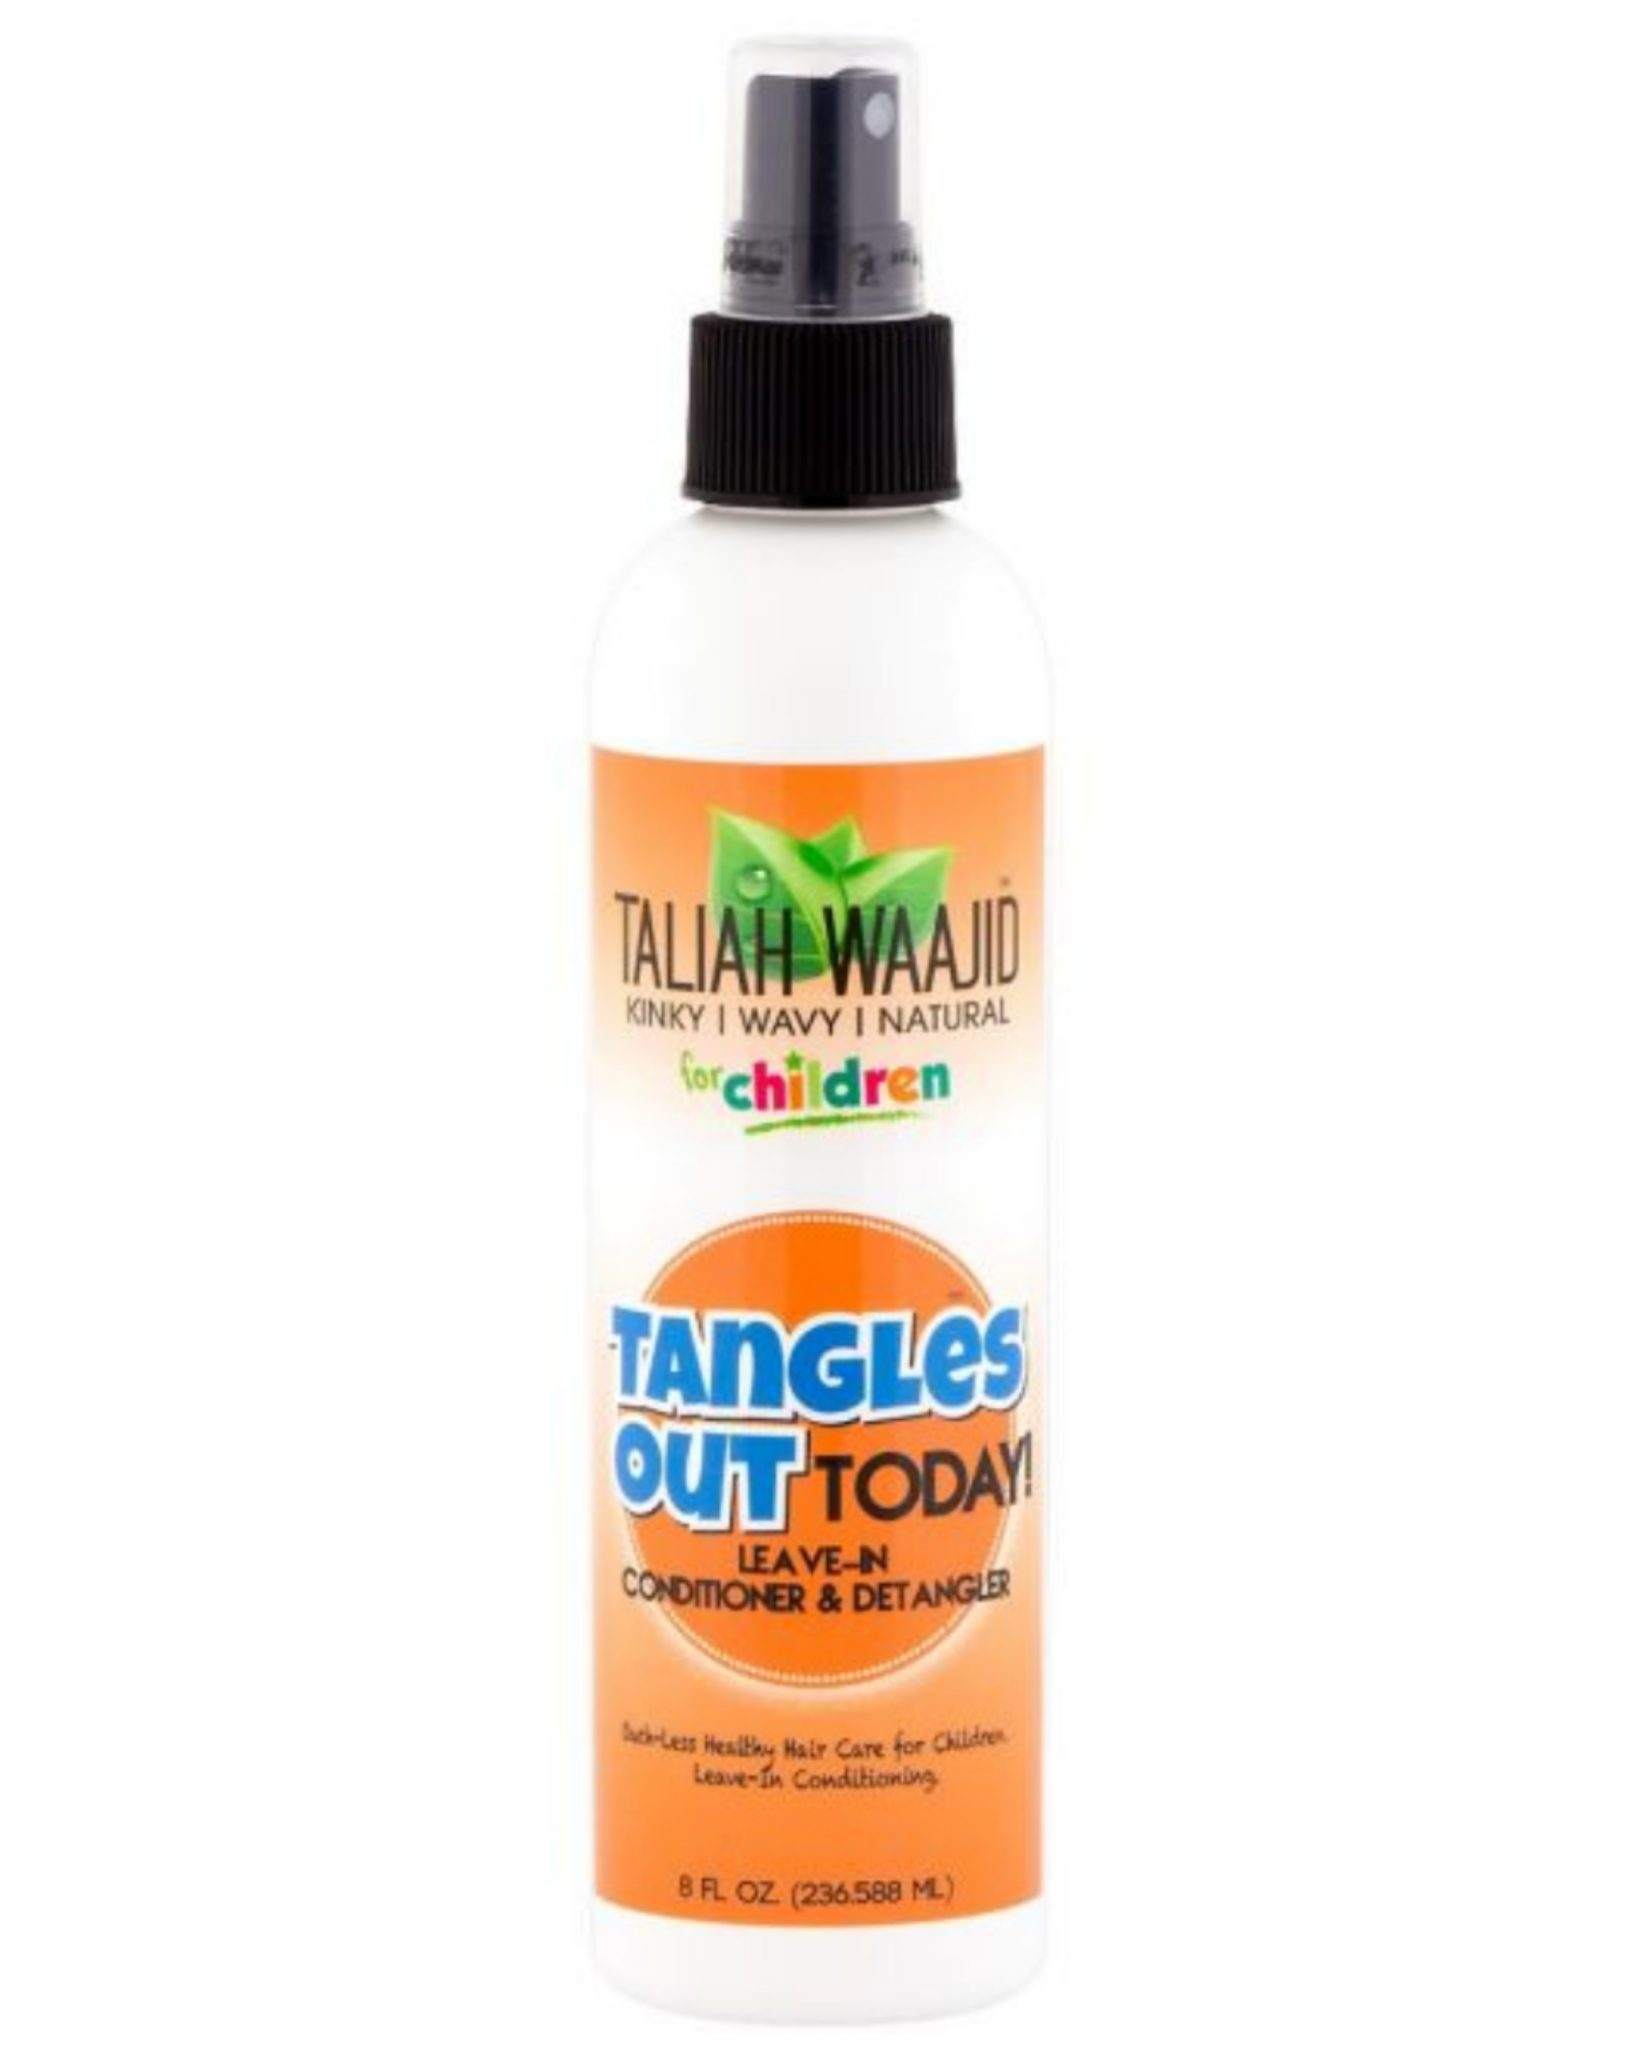 Taliah Waajid for Children Tangles Out Today Leave-in Conditioner & Detangler